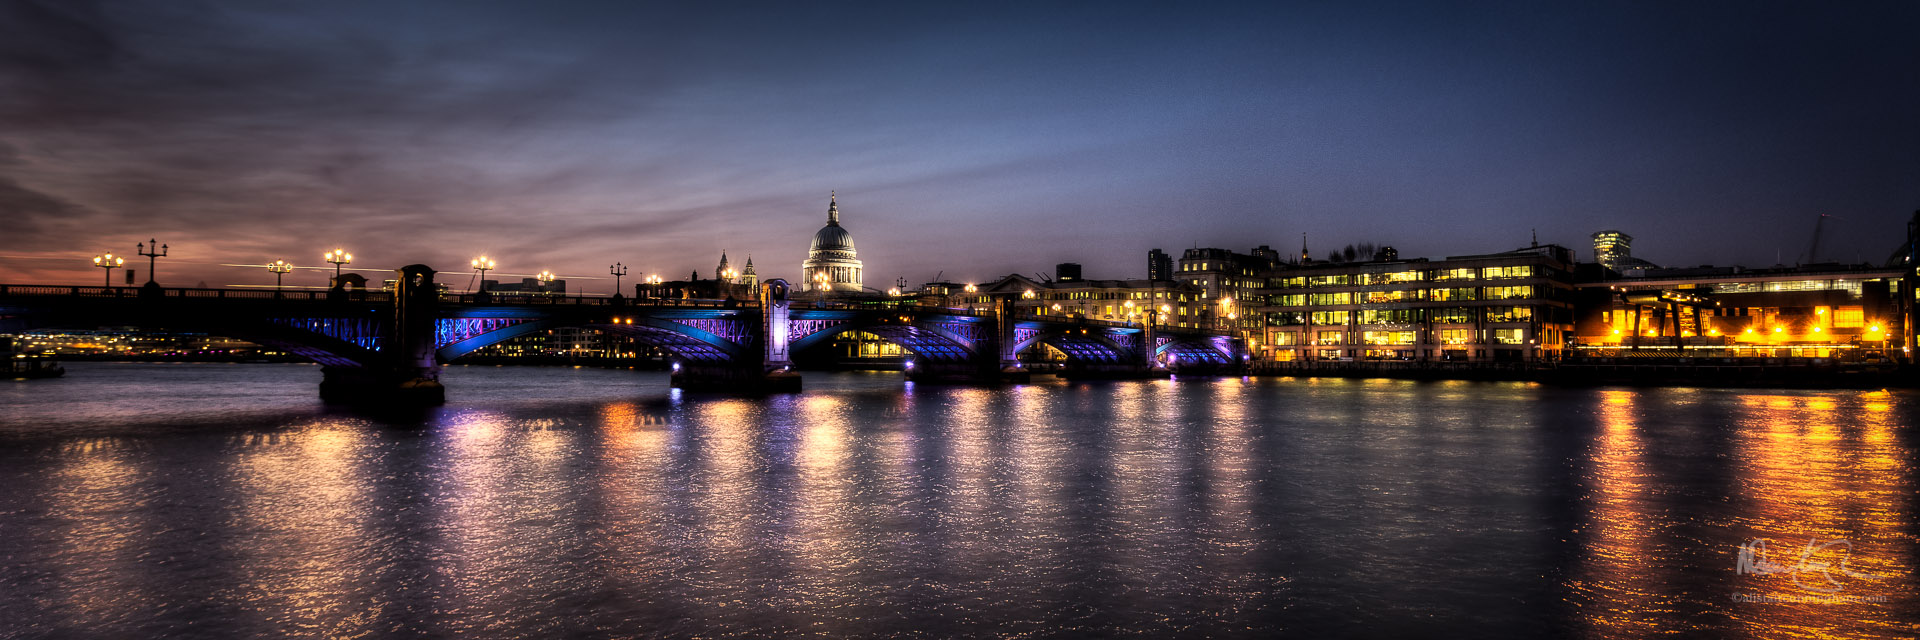 Blackfriars Bridge by Night